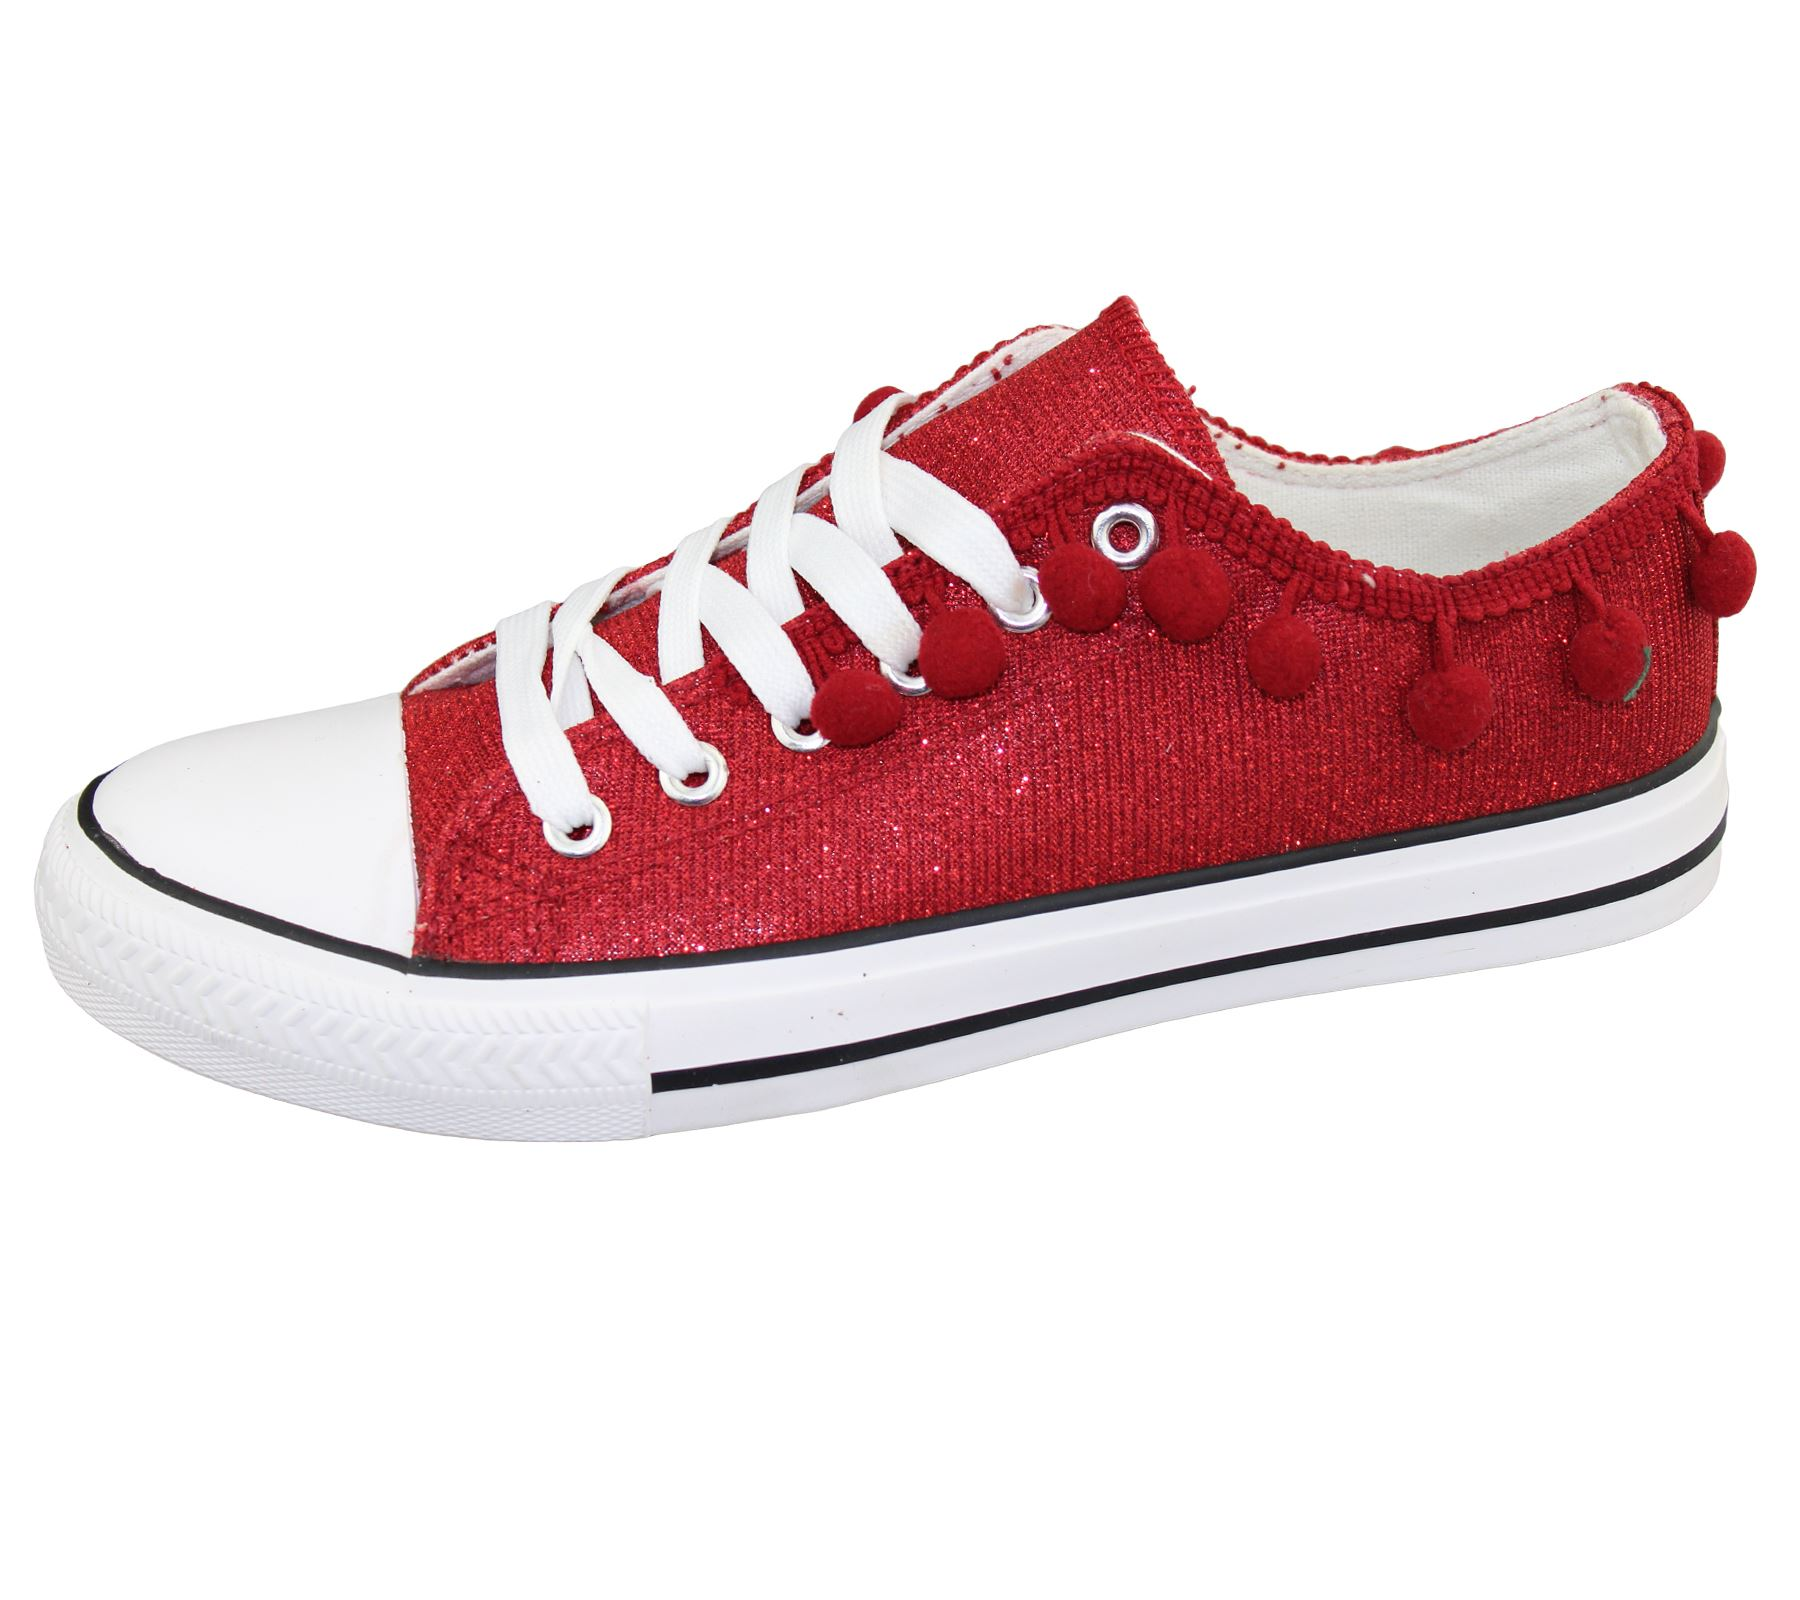 Enjoy free shipping and easy returns every day at Kohl's. Find great deals on Womens Canvas Shoes at Kohl's today!